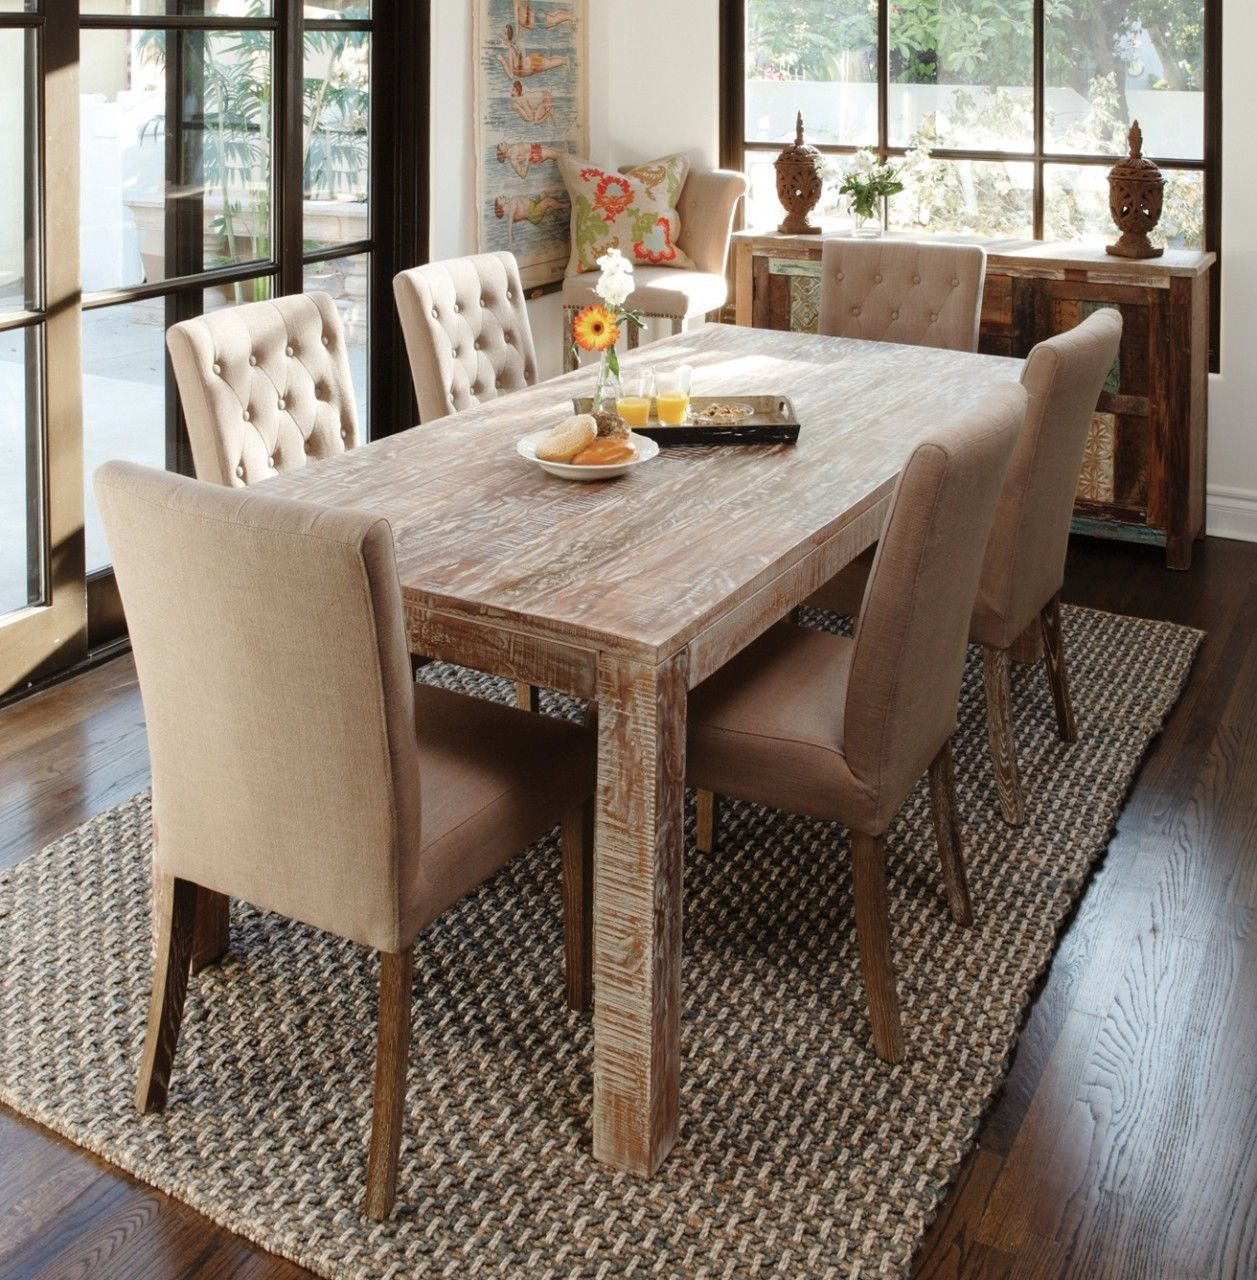 Dining room set rustic - Dining Room Marvellous Design For Dining Room Areas With Rectangular Rustic Small Dining Table Including Tufted Natural Fabric Dining Chair And Mahogany